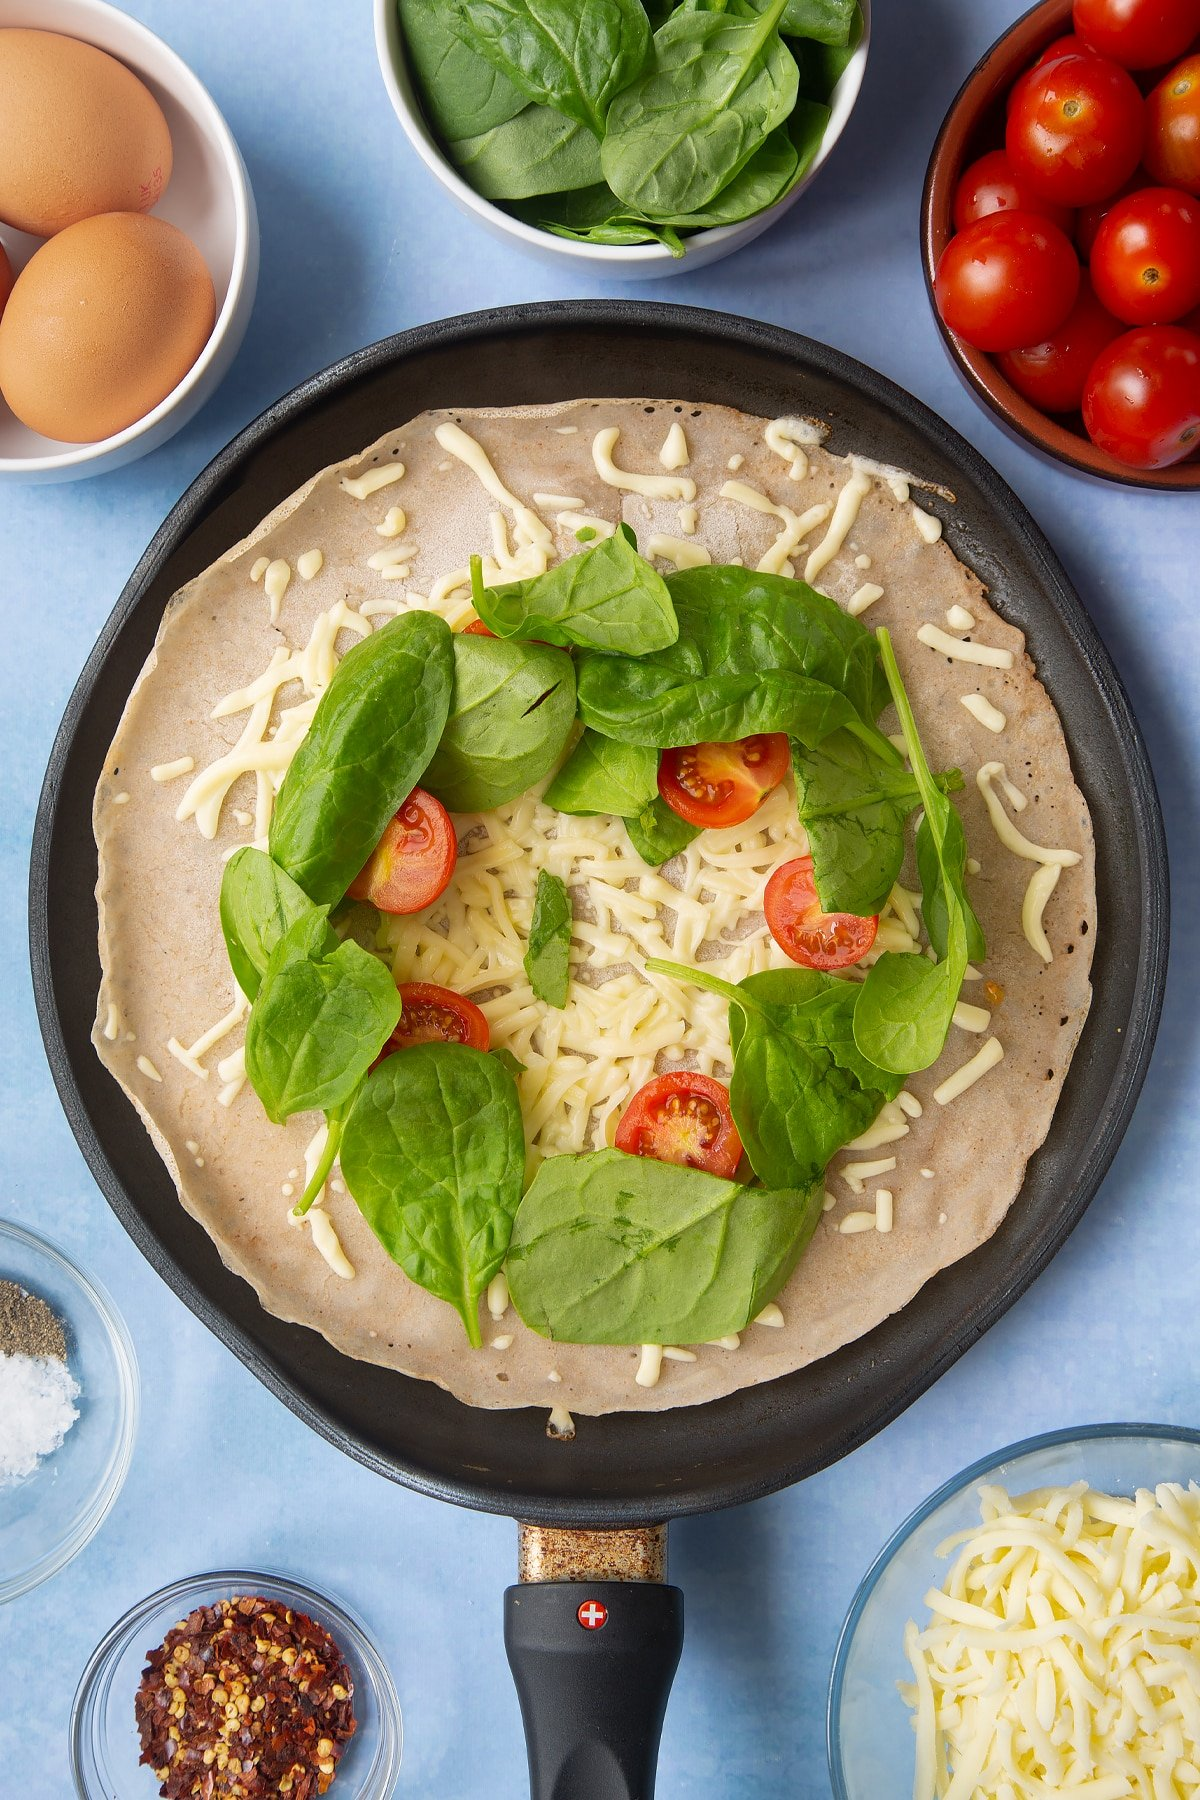 Buckwheat crepe topped with grated cheese, cherry tomatoes and spinach in a crepe pan. Ingredients to make buckwheat galettes surround the pan.